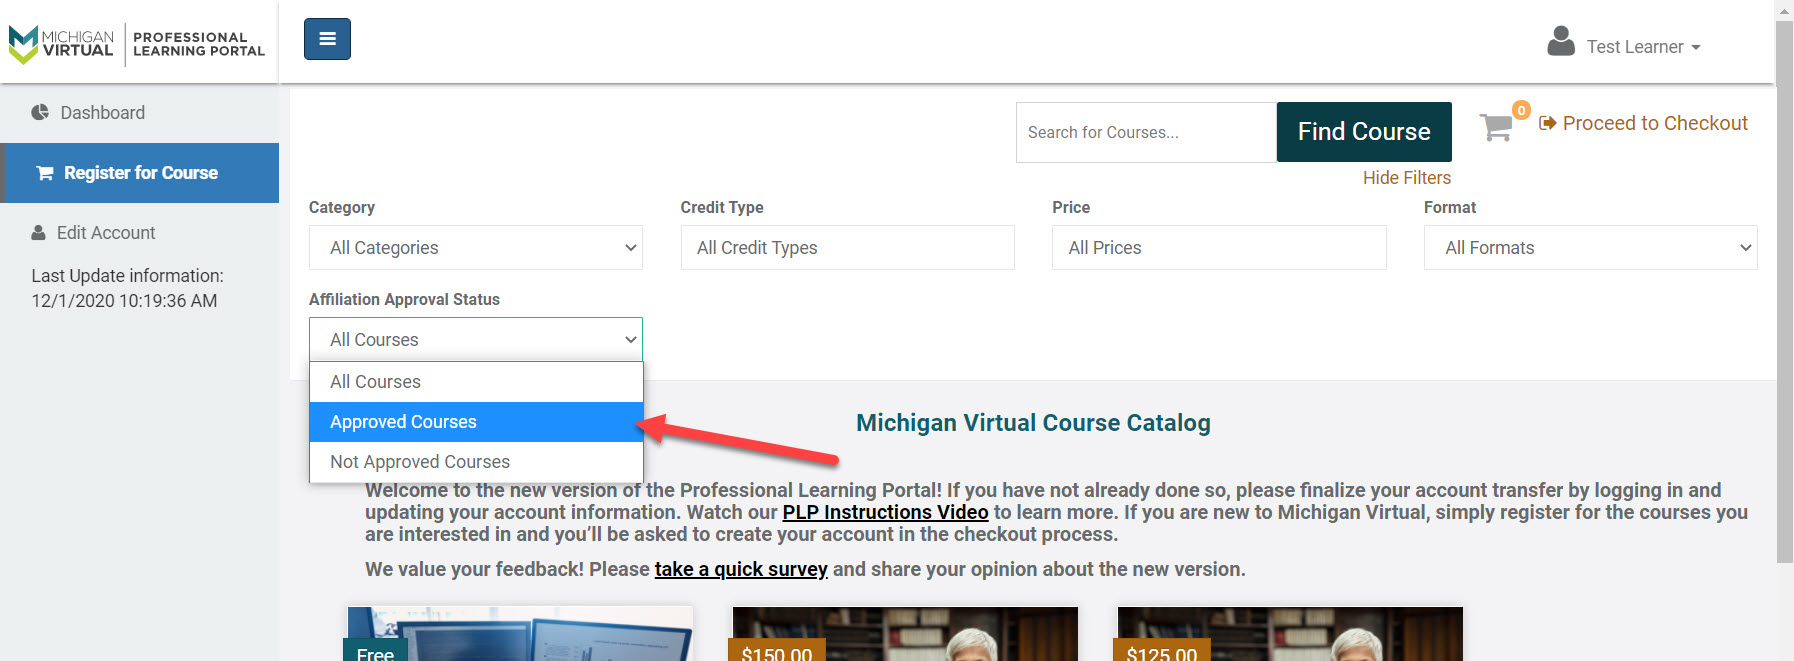 """Image of the Register for Course option selected within the PLP. An arrow points to the """"Approved Courses"""" option within the Affiliation Approval Status drop-down field."""